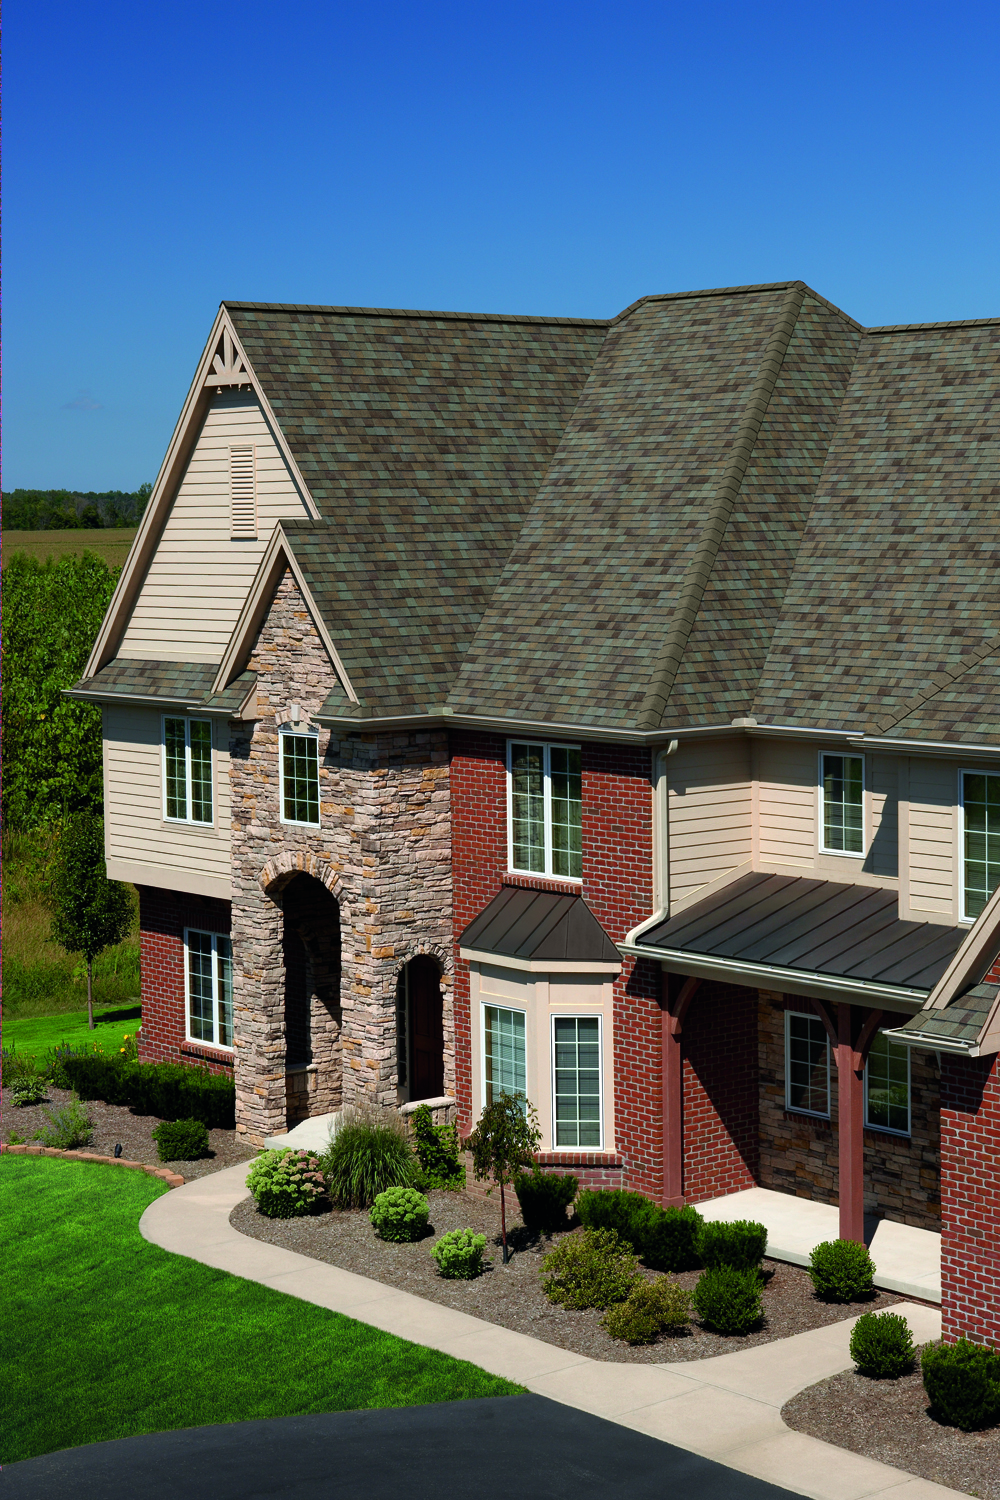 Cincinnati Roofing – A New Roof May Be Your Best Return on Investment